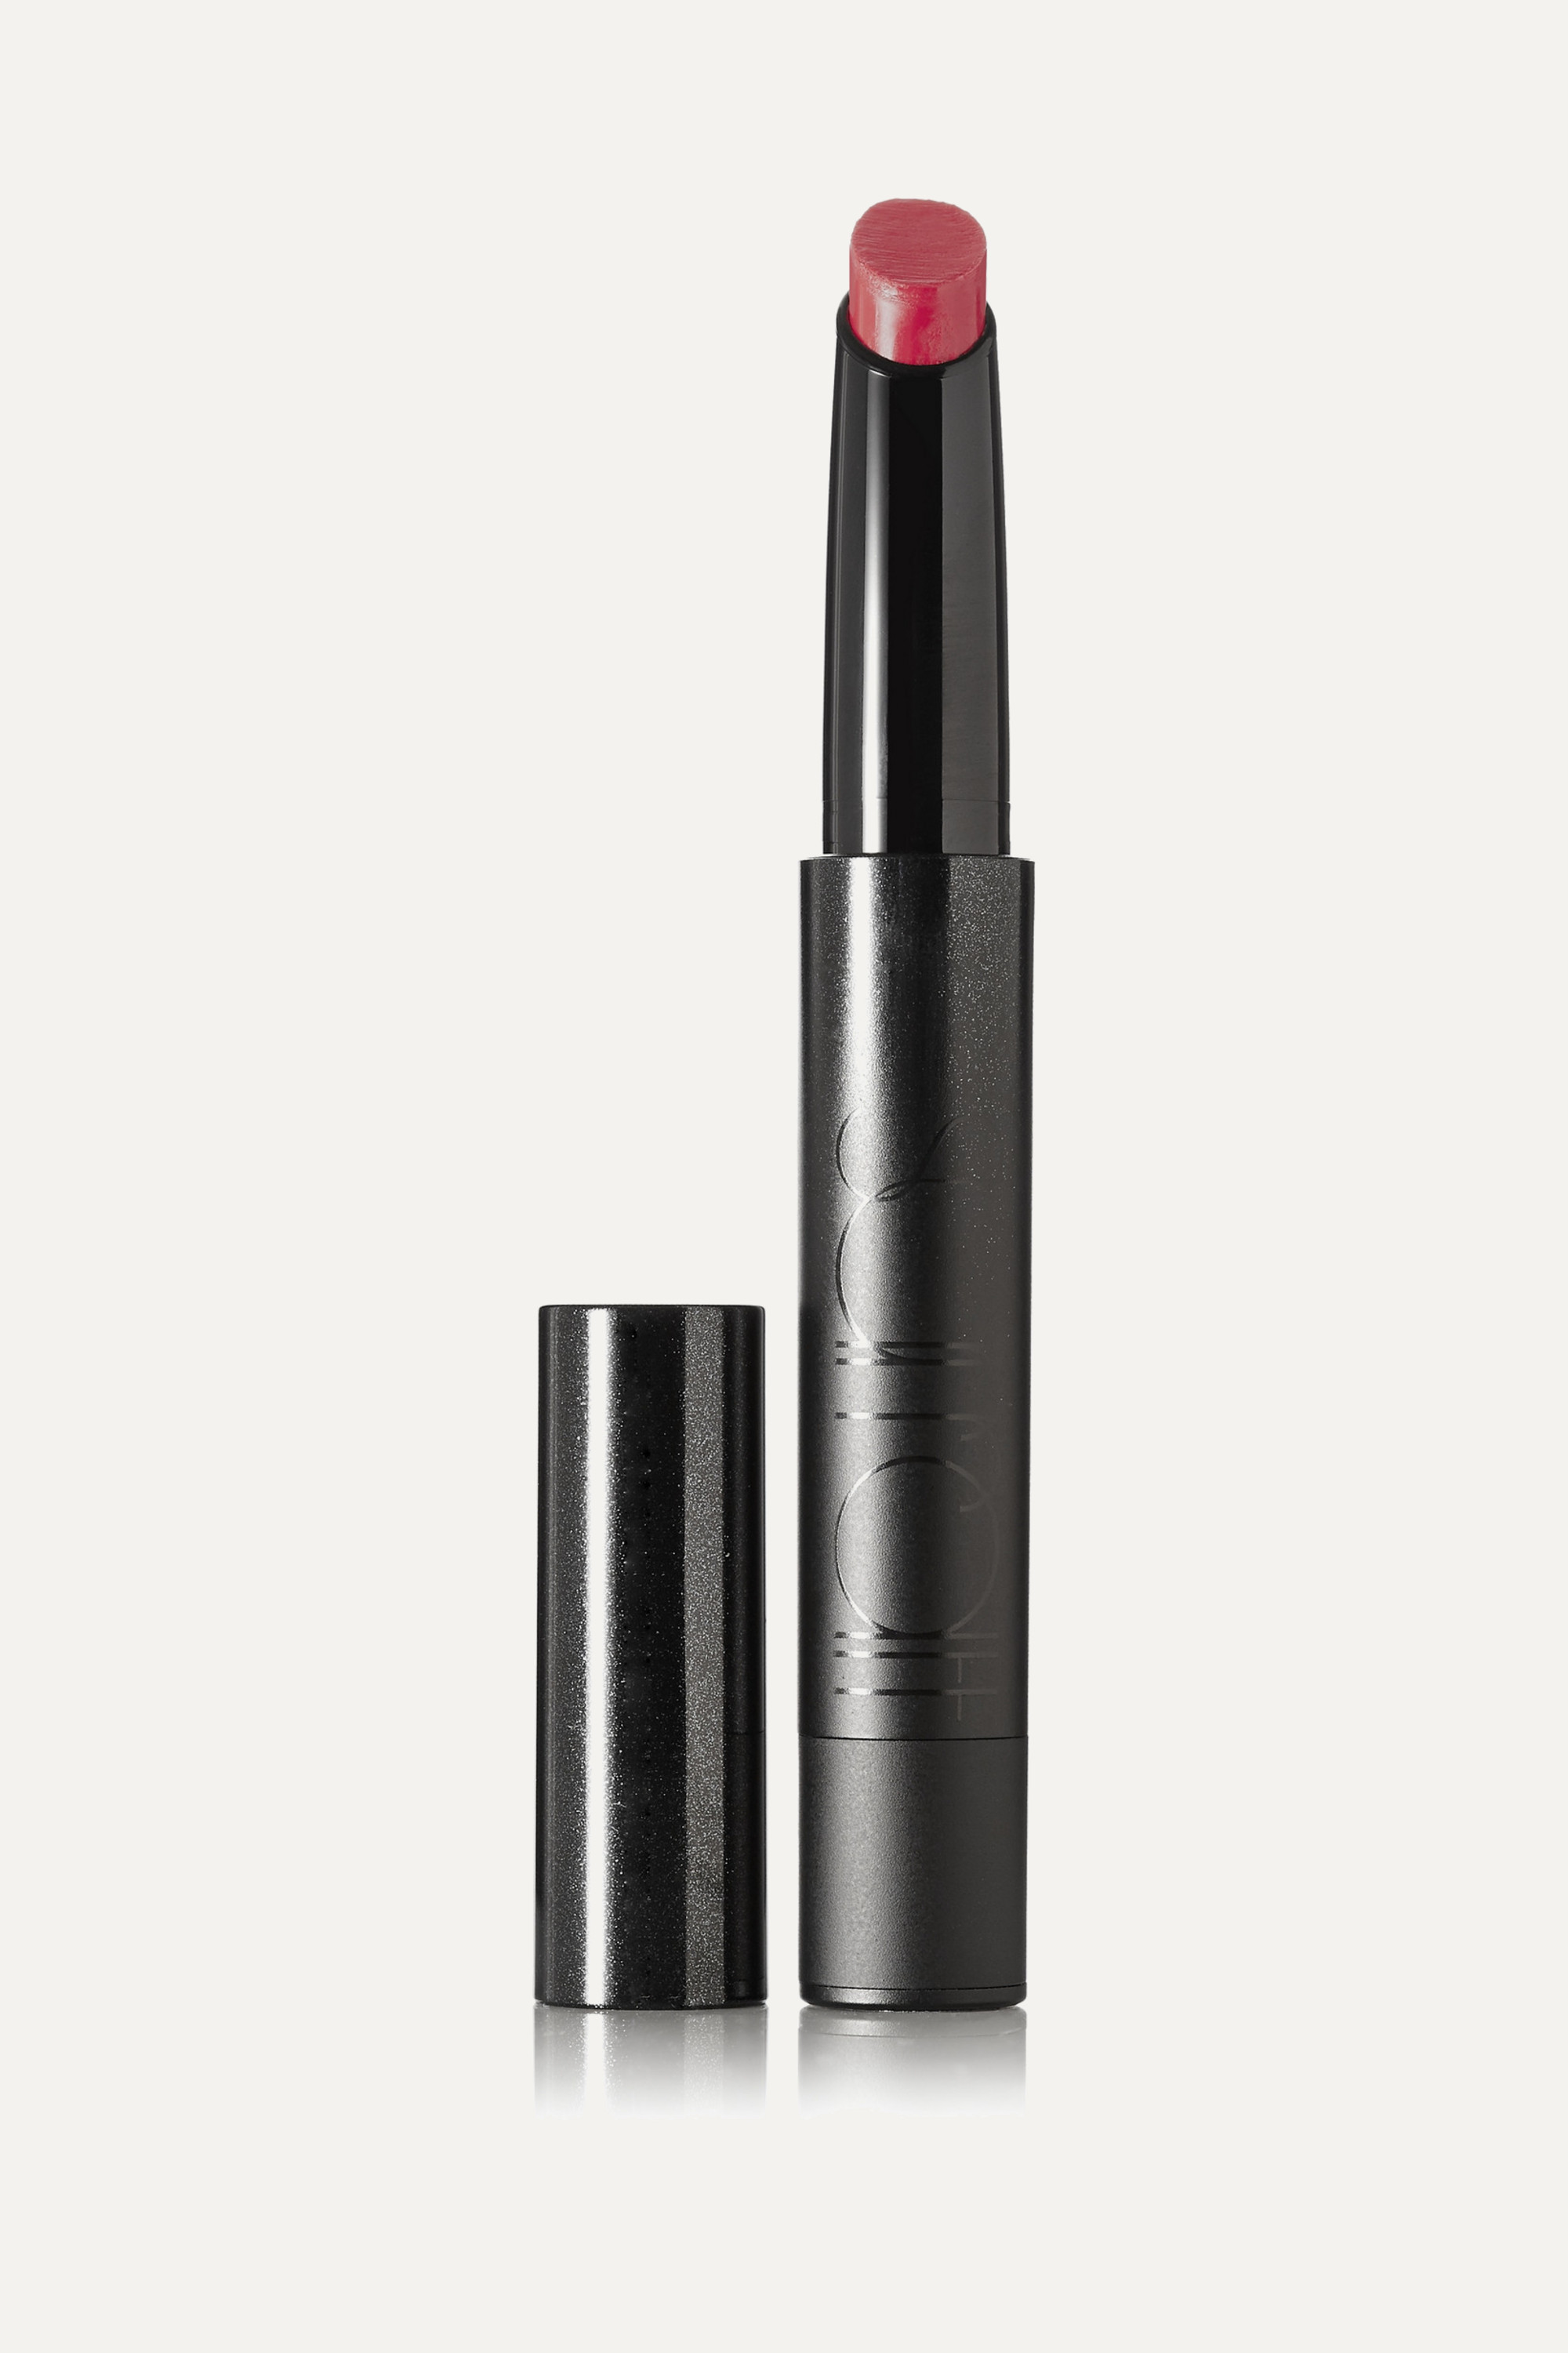 Surratt Beauty Lipslique – Perfectionniste 12 – Lippenstift